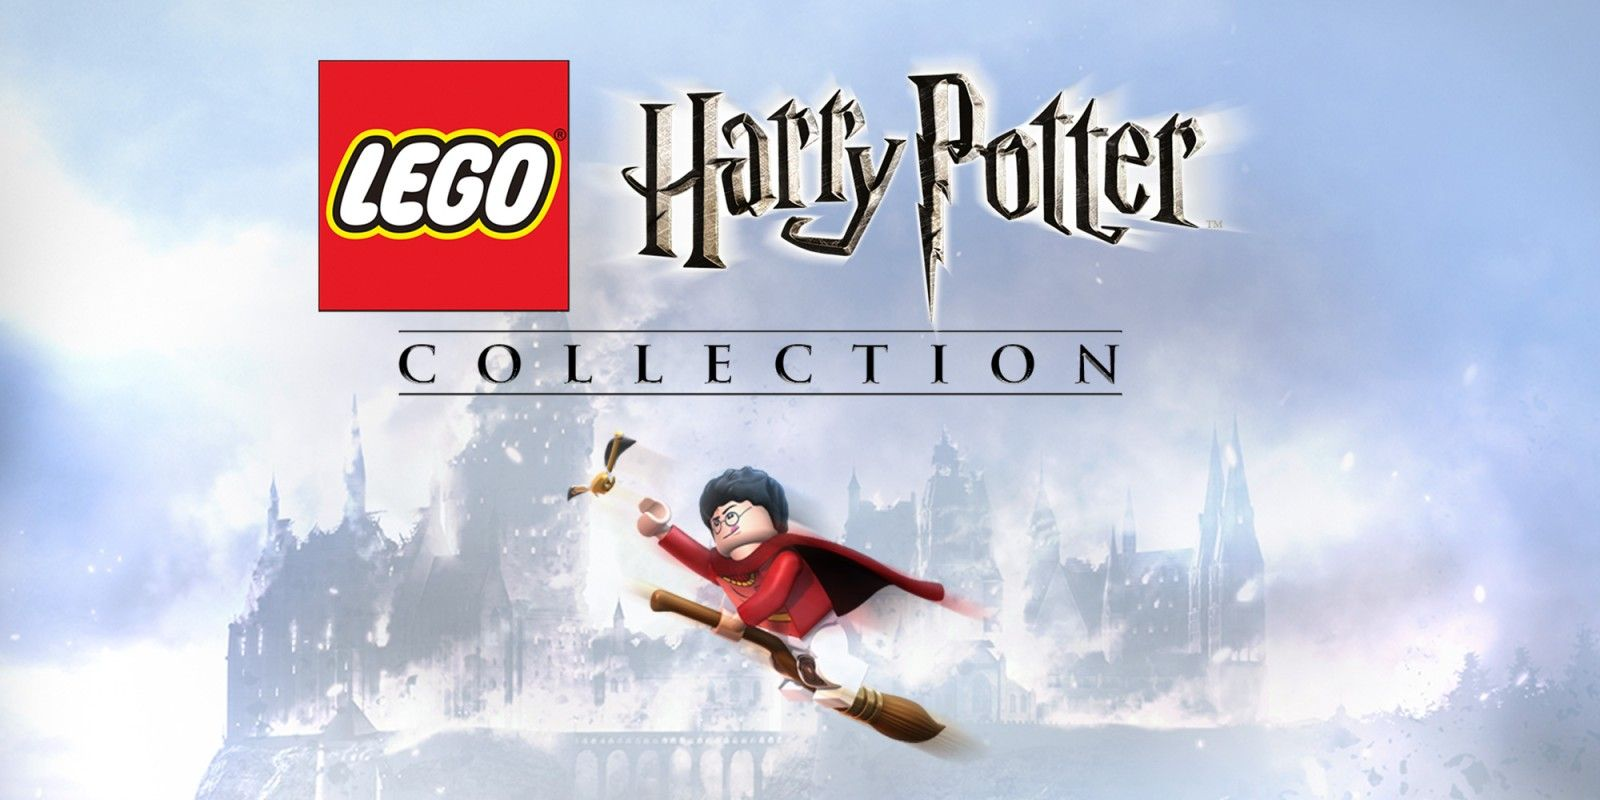 LEGO Harry Potter Collection Review: A Fun If Unambitious Remaster